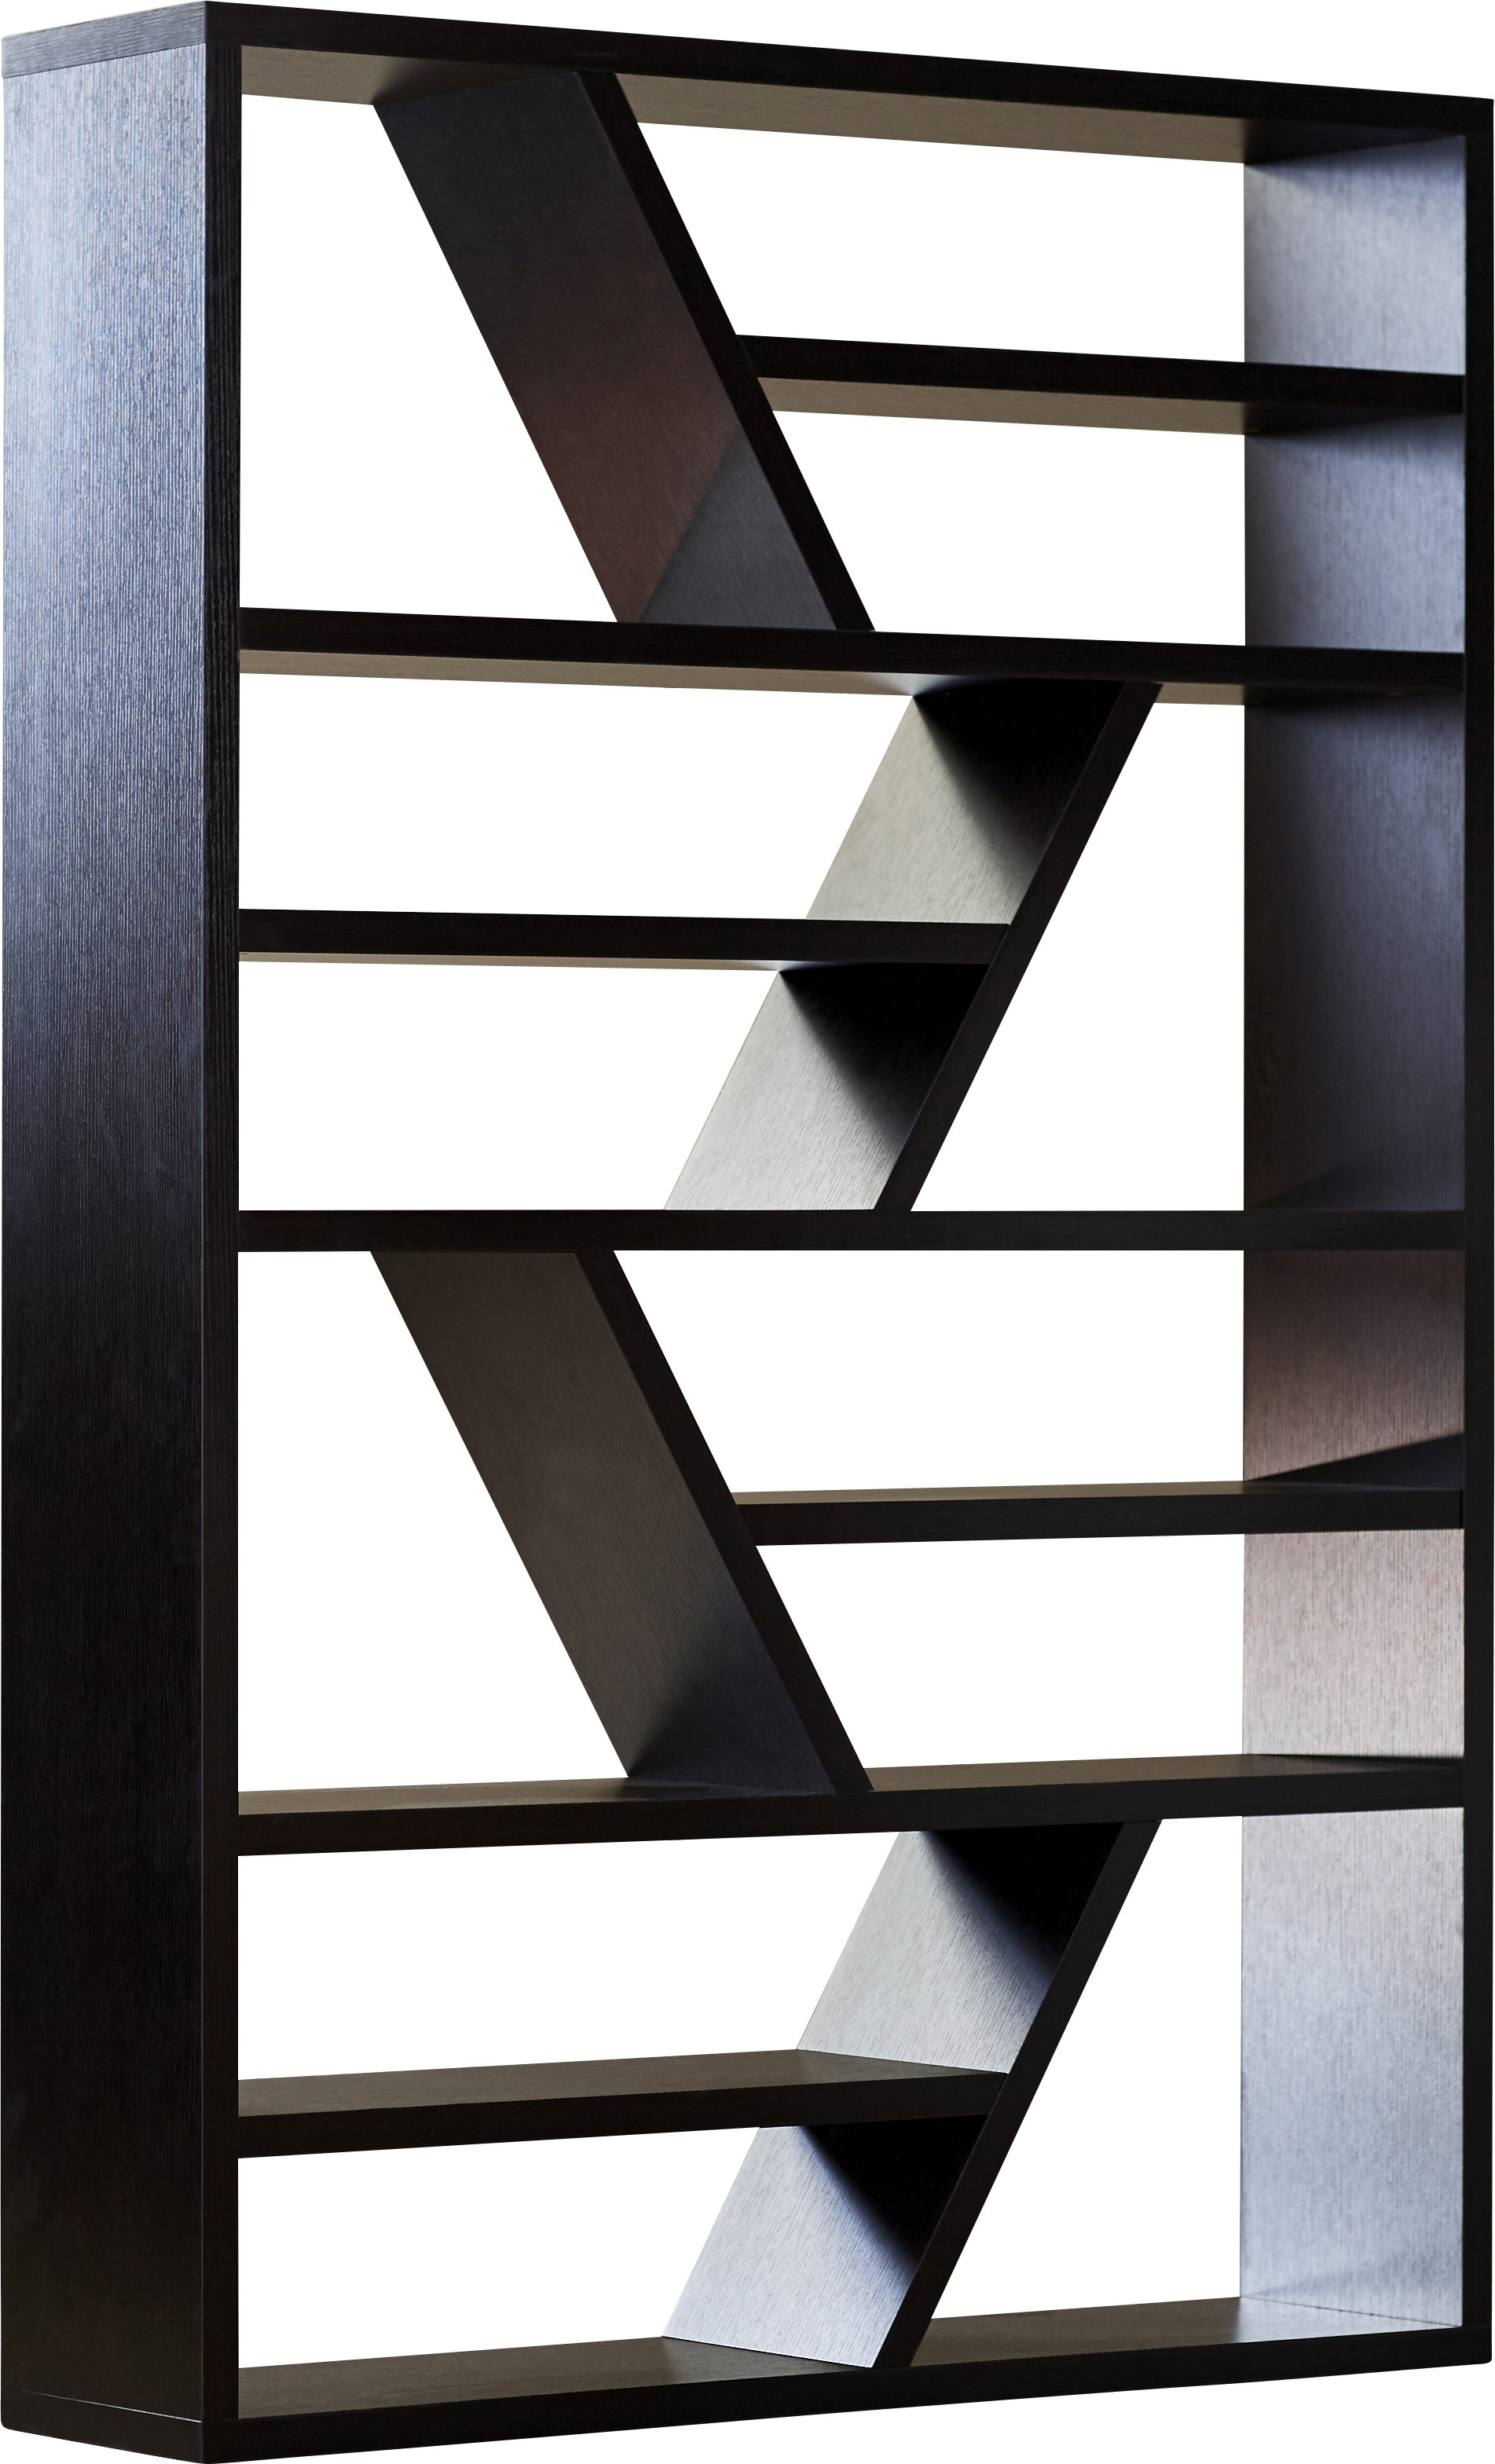 Swarey Geometric Bookcases With Well Liked Swarey Geometric Bookcase (View 3 of 20)